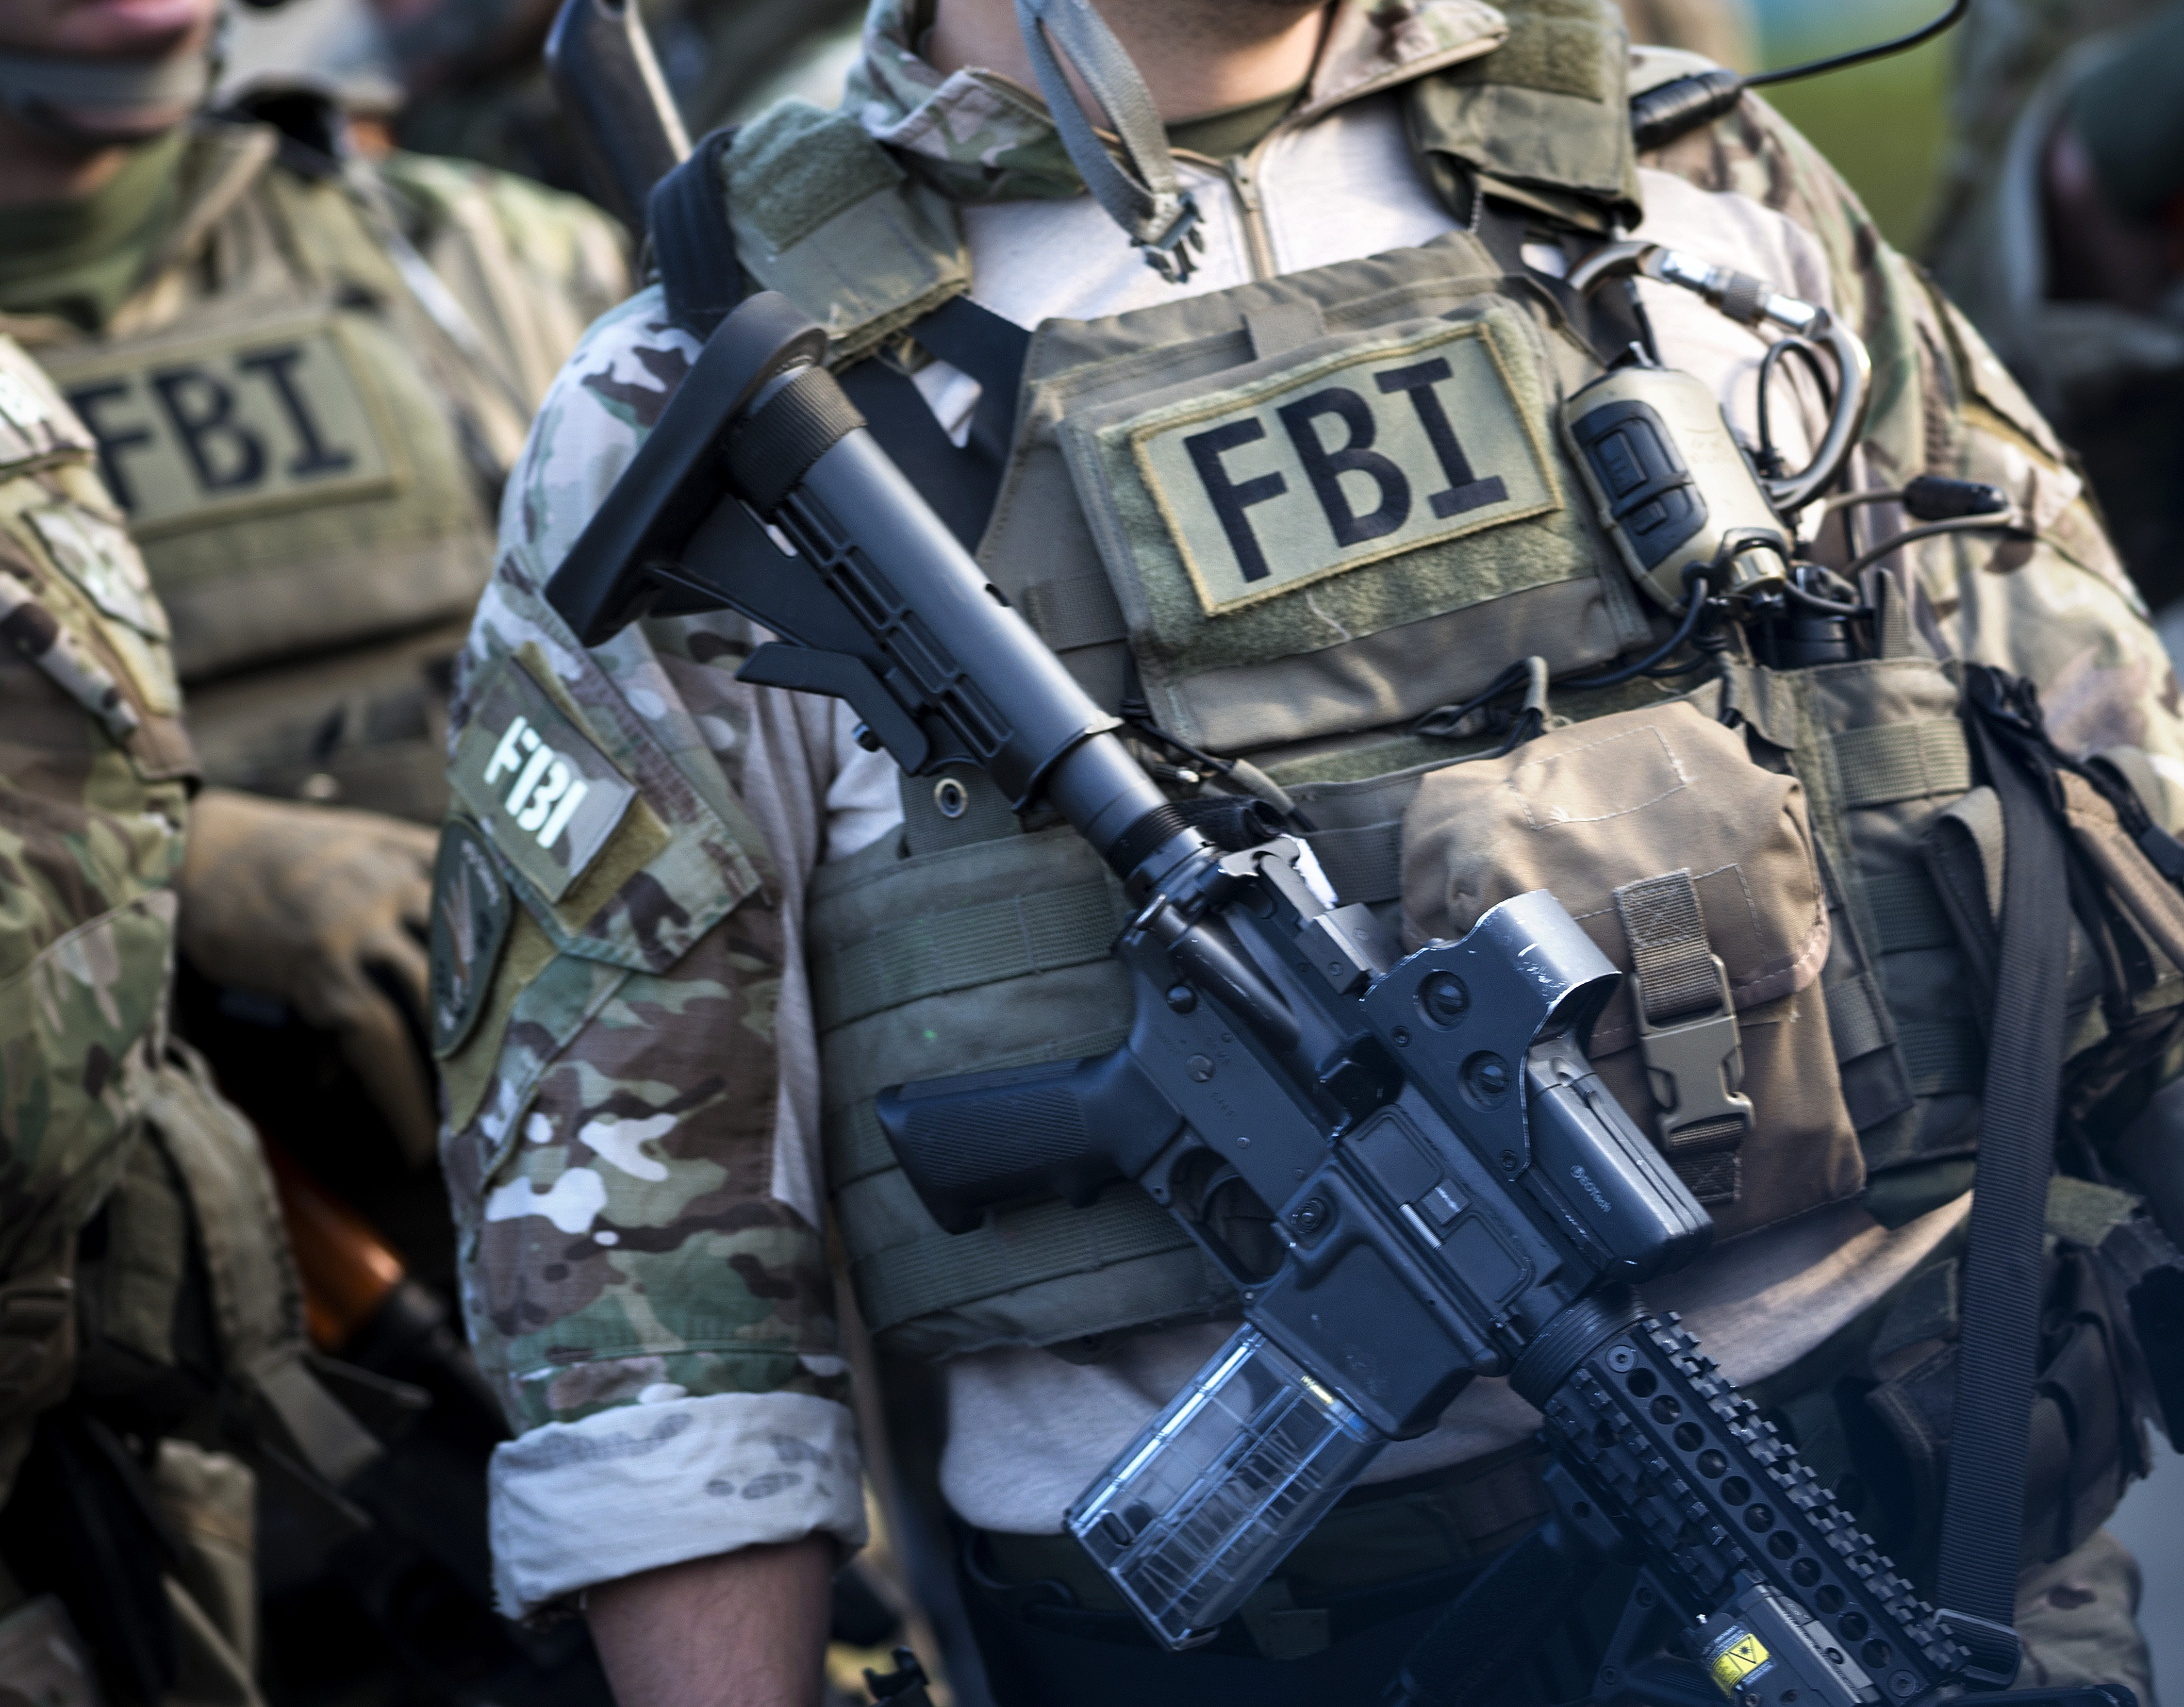 Members of an FBI SWAT team are seen during a training exercise in Alexandria, Va., on May 2, 2014